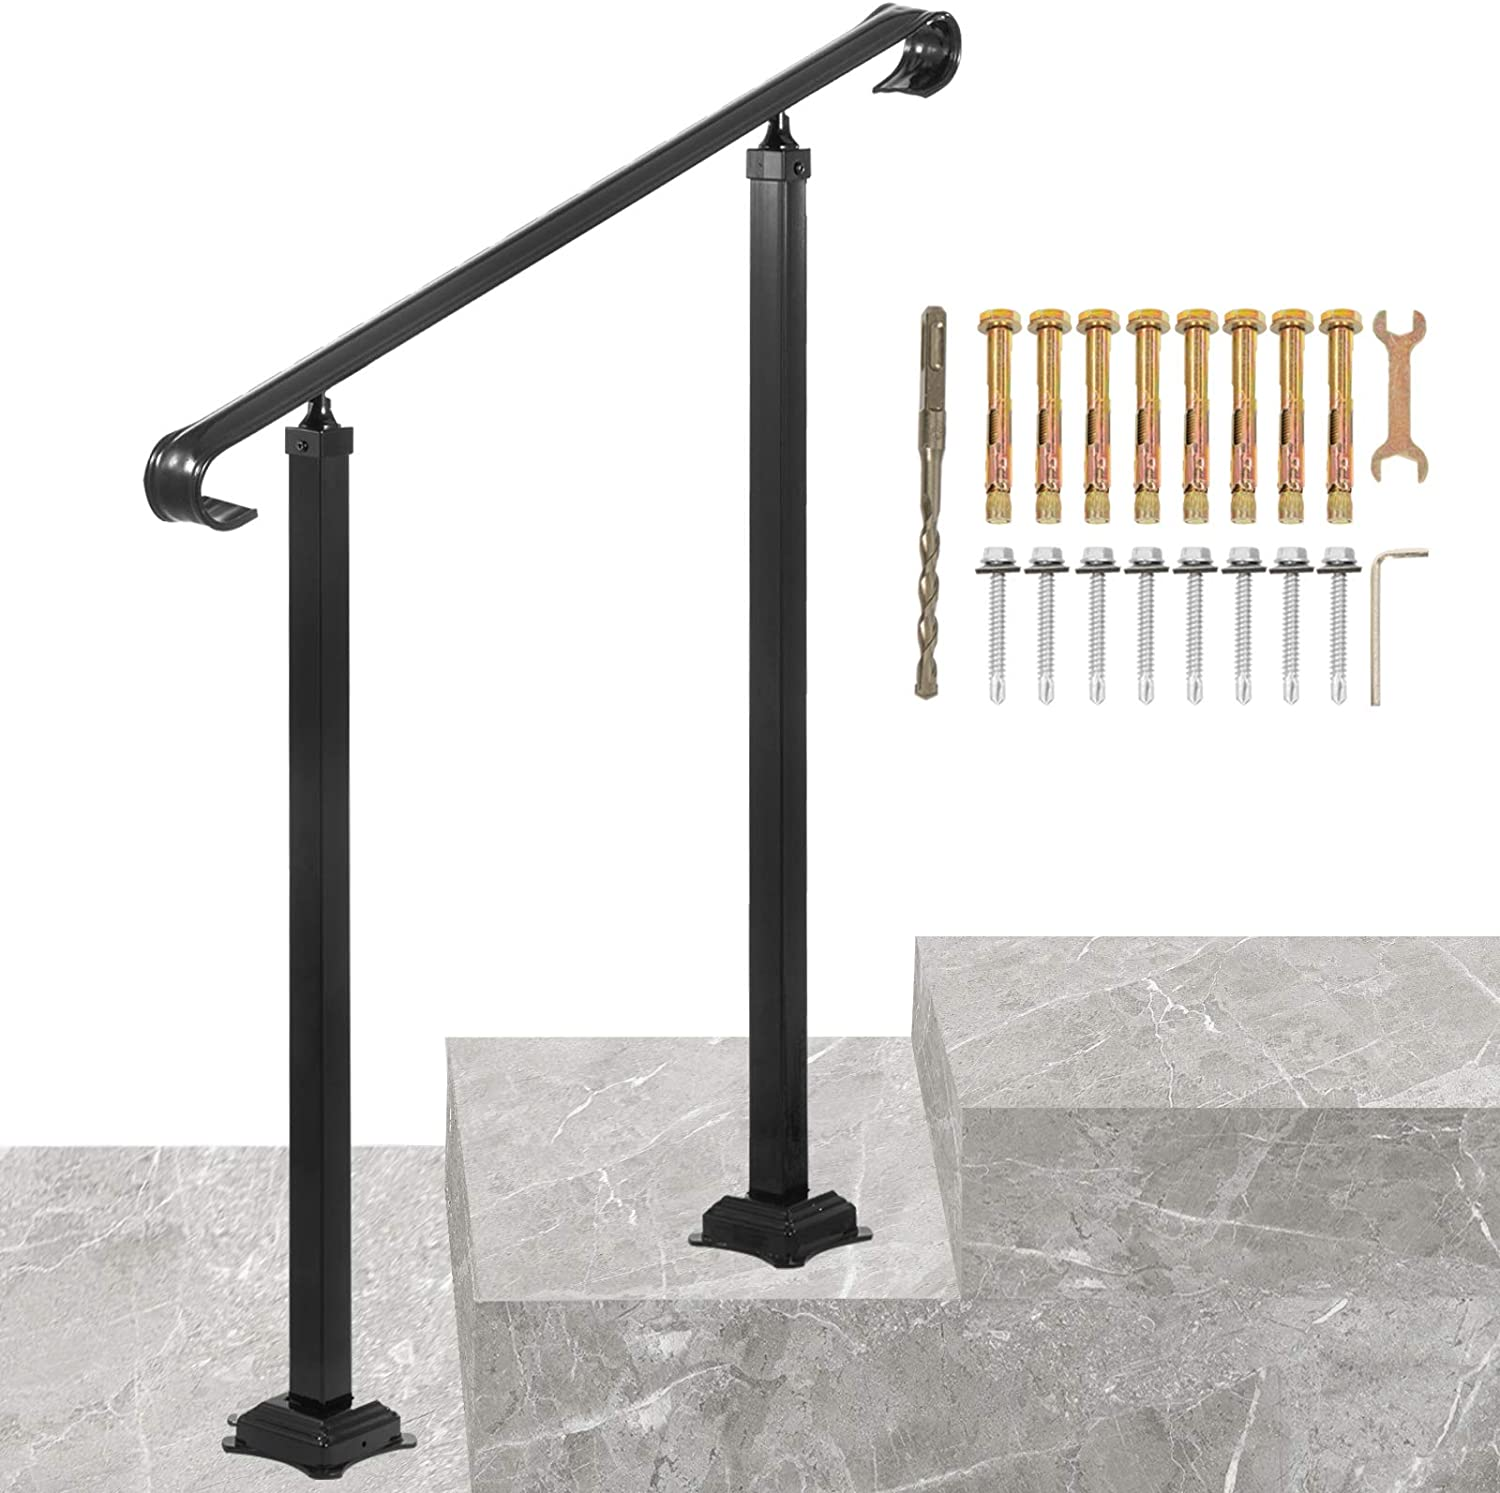 VEVOR Fit 1 or 2 Steps Wrought Iron Handrail,Outdoor Stair Railing, Adjustable Front Porch Hand Rail, Black Transitional Hand railings for Concrete Steps or Wooden Stairs with Installation Kit